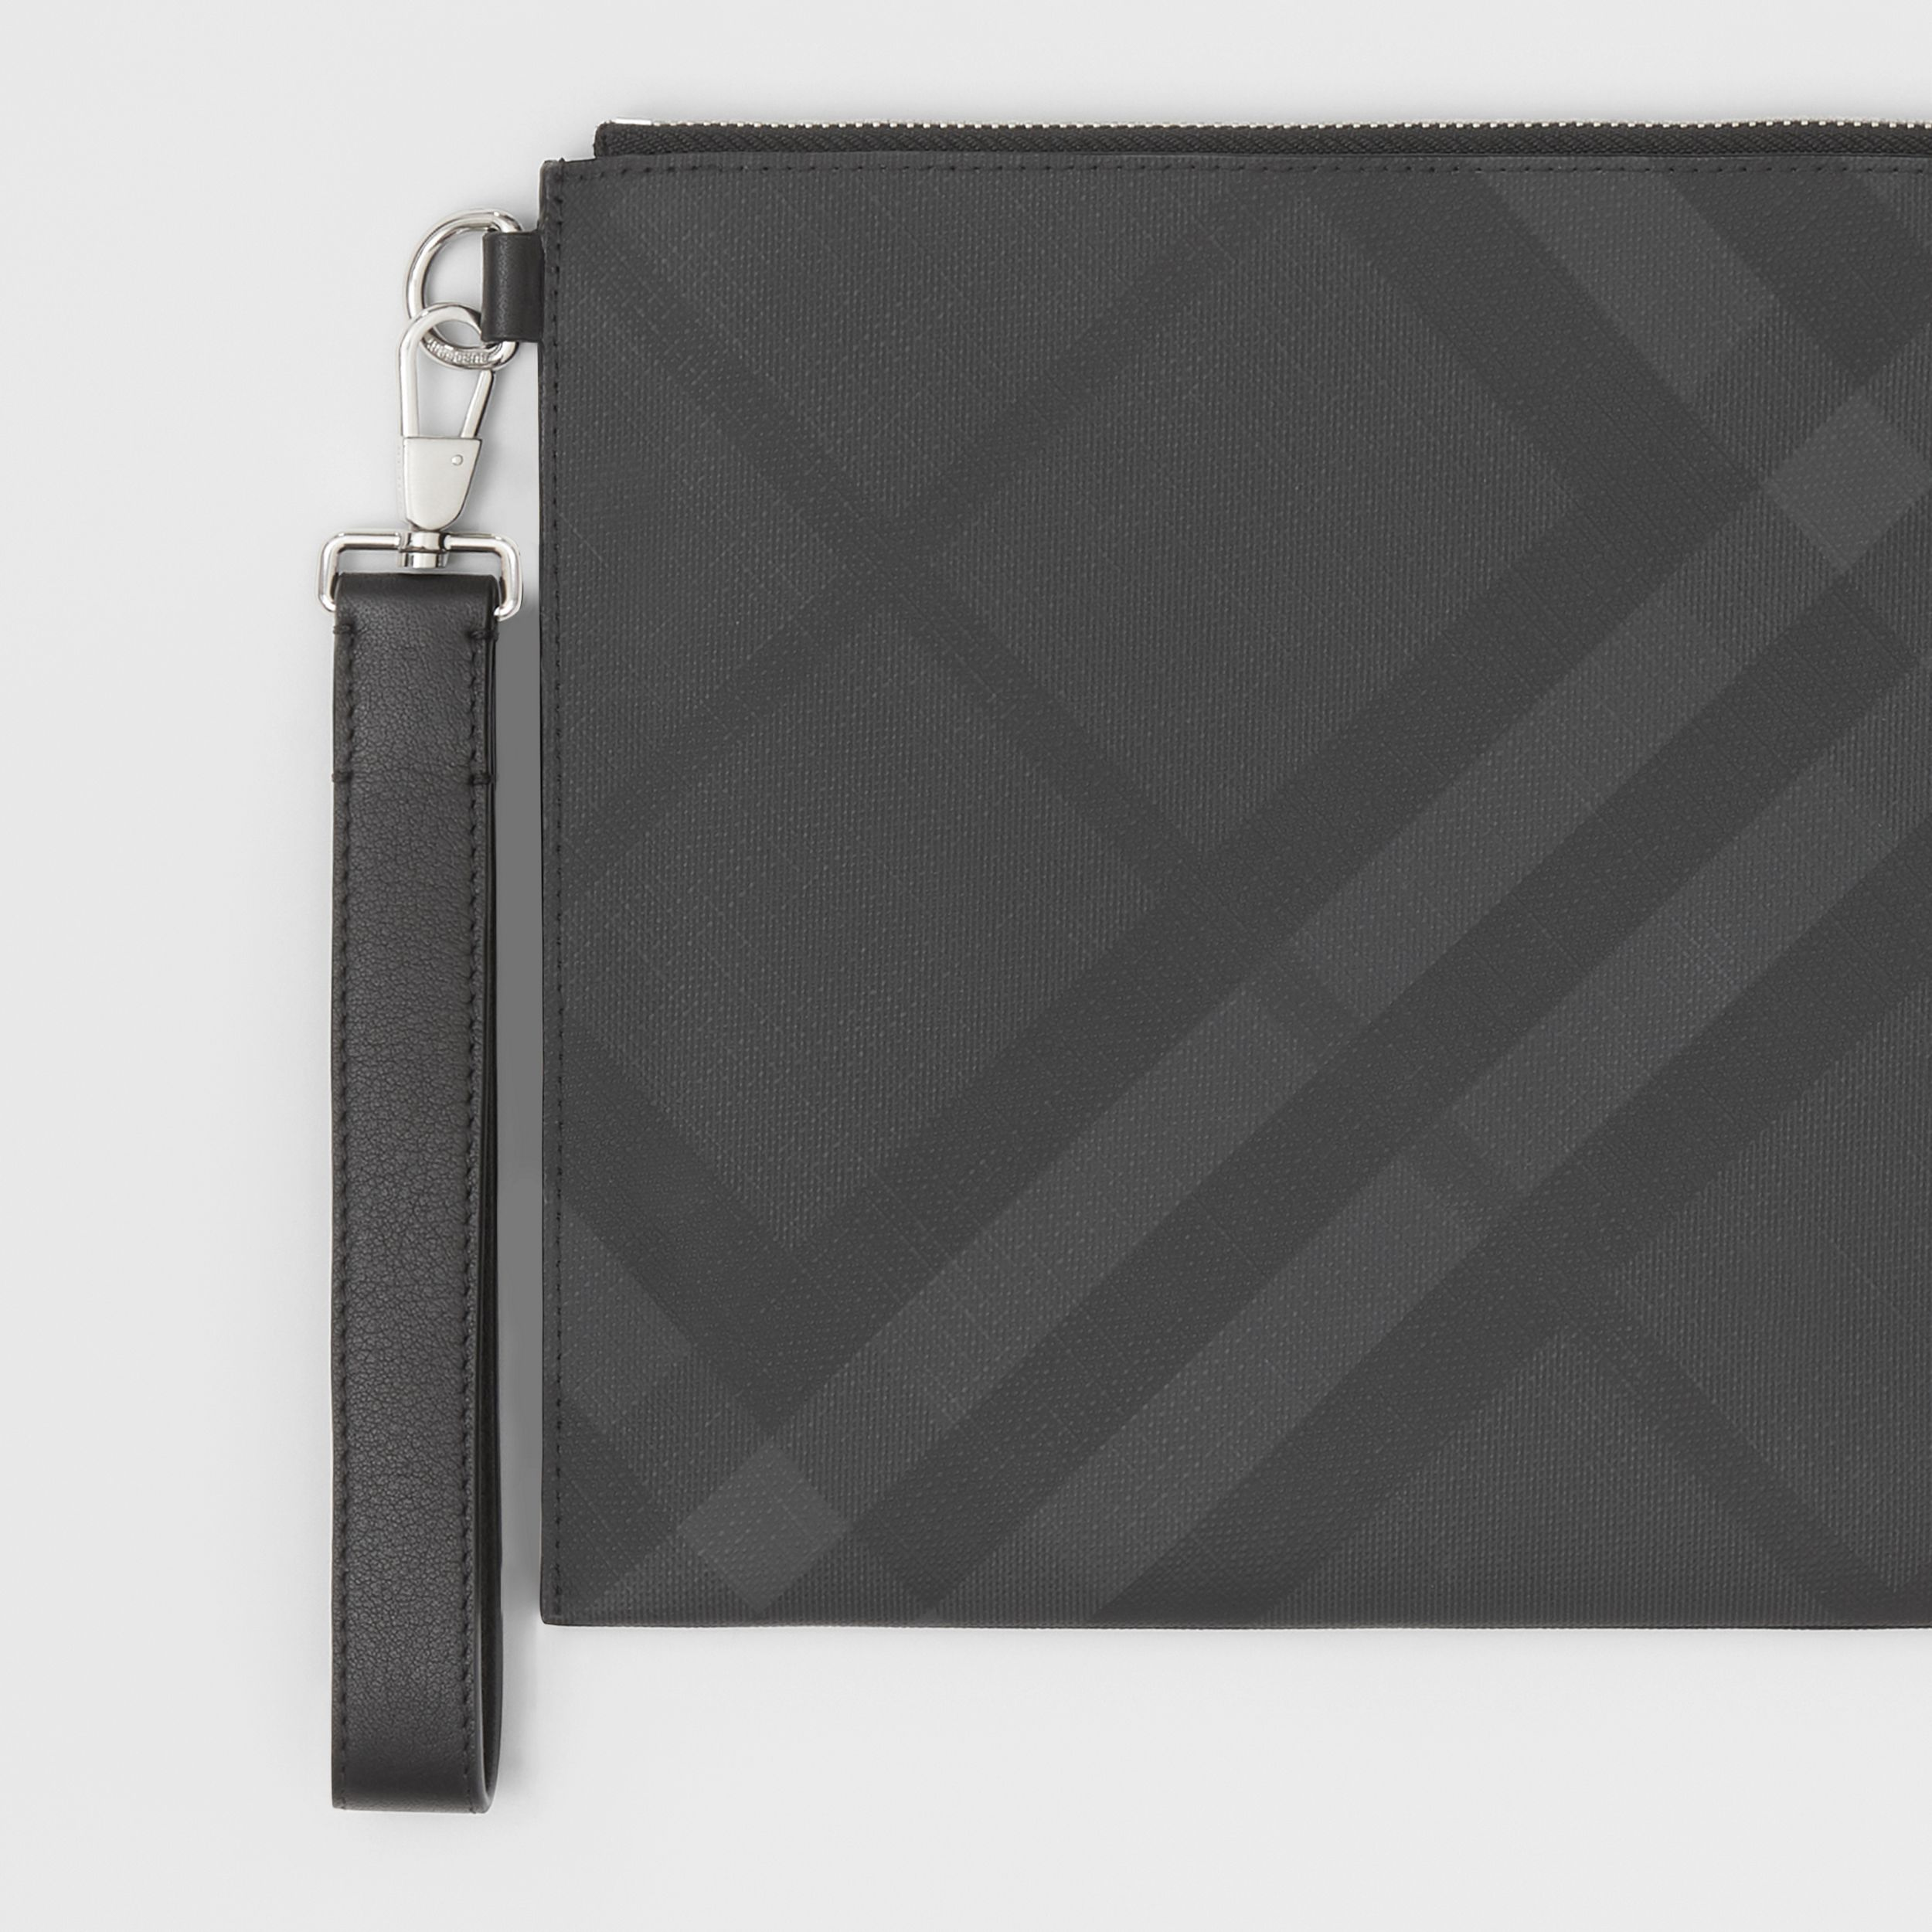 London Check and Leather Zip Pouch in Dark Charcoal - Men | Burberry - 2